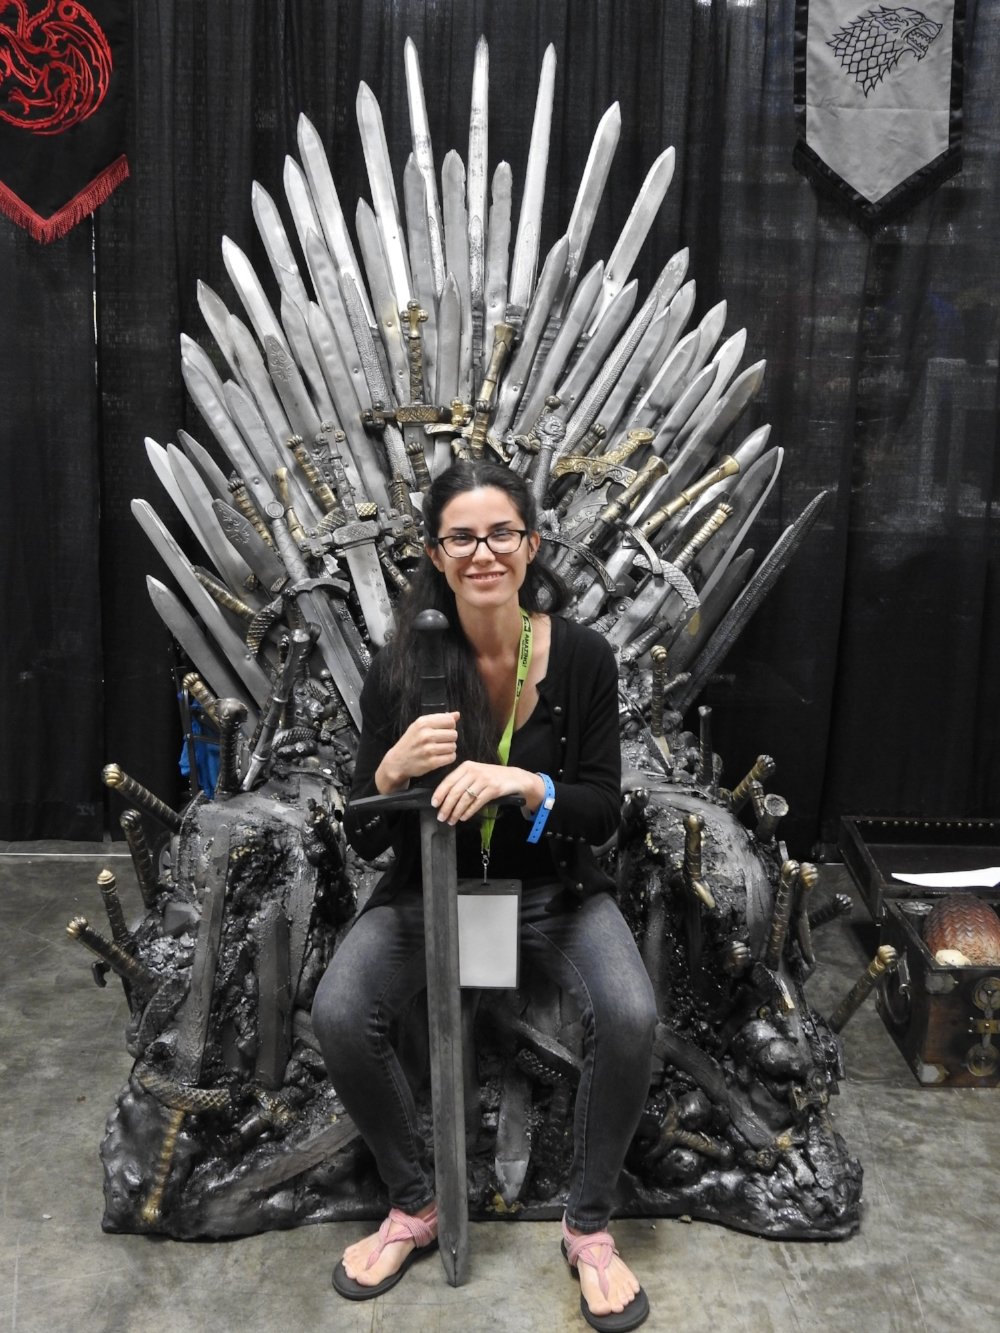 Here I am in the hot seat! The Iron Throne by  JHM Productions  was so cool! (Photo Credit: Nick Holt)